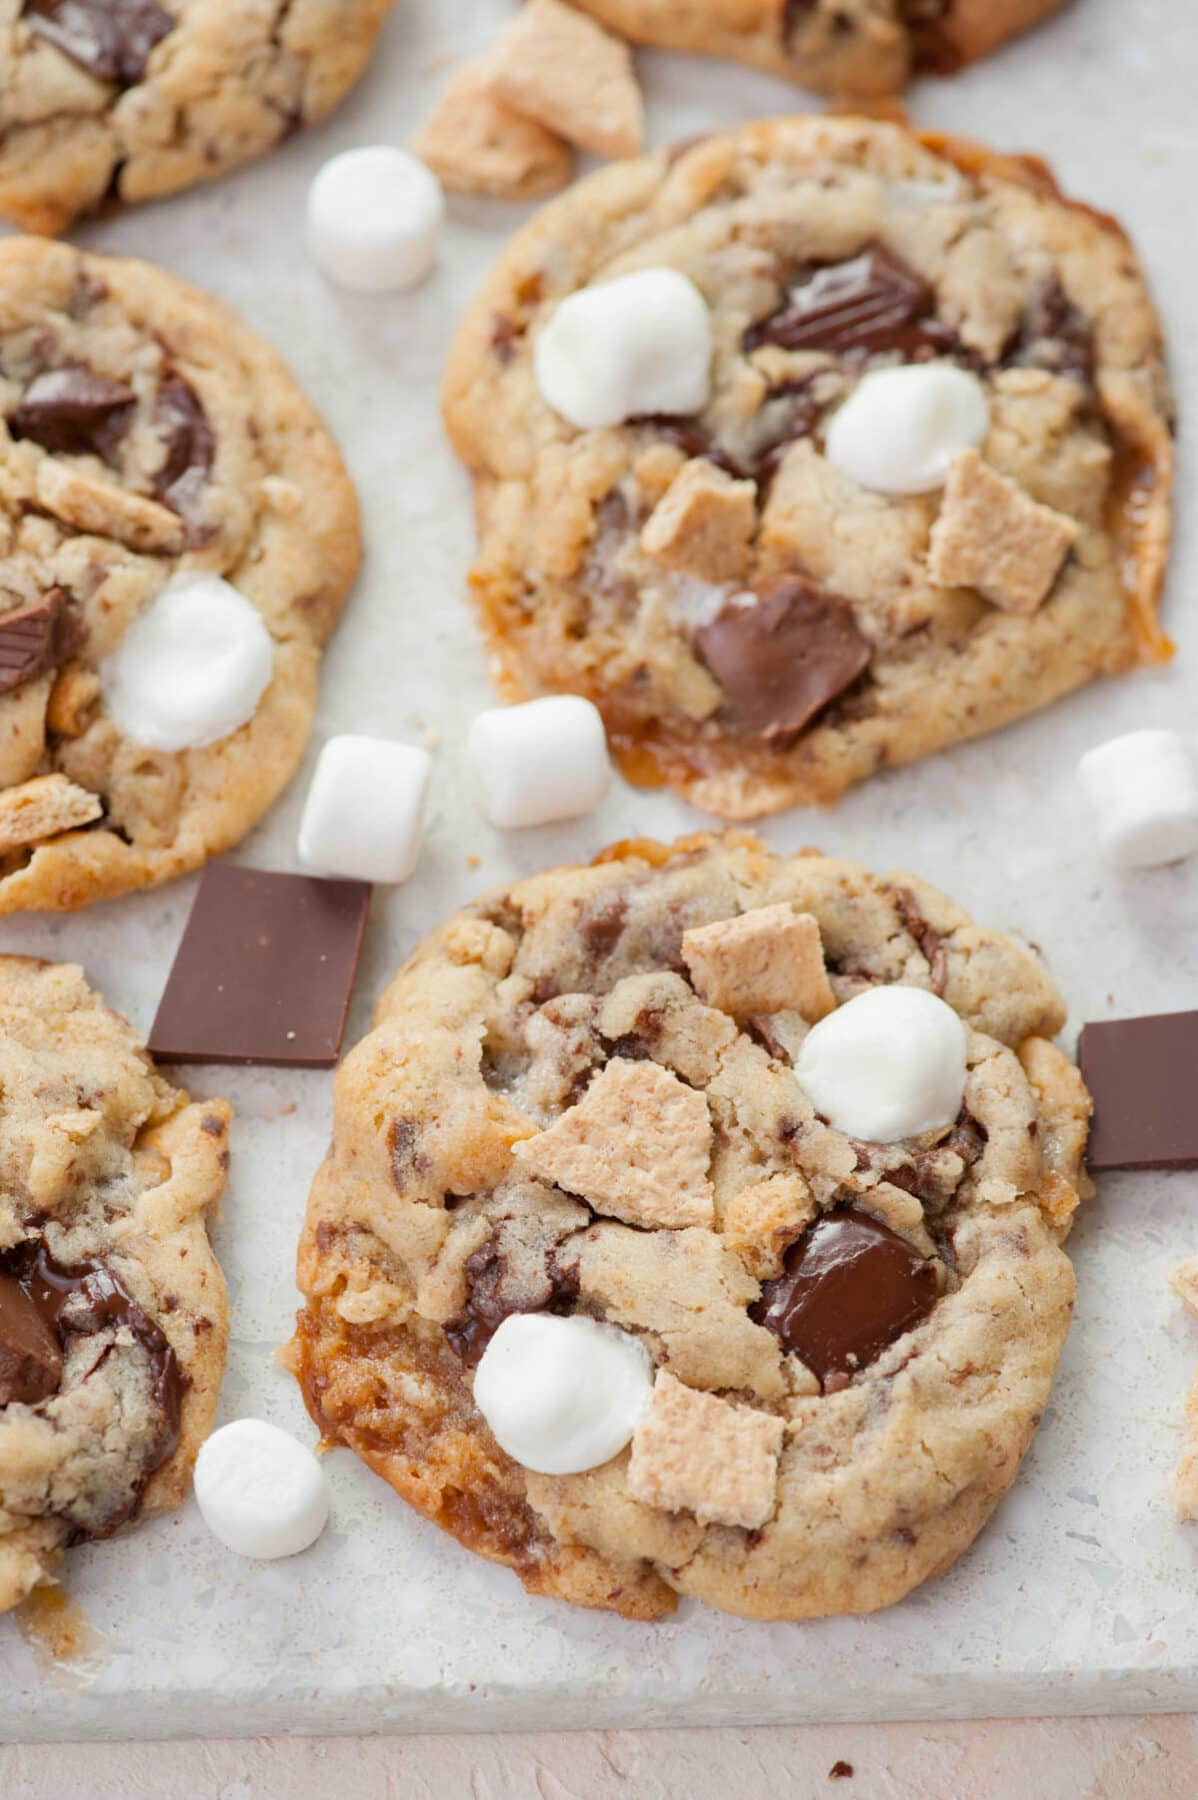 S'mores cookies on a grey background.